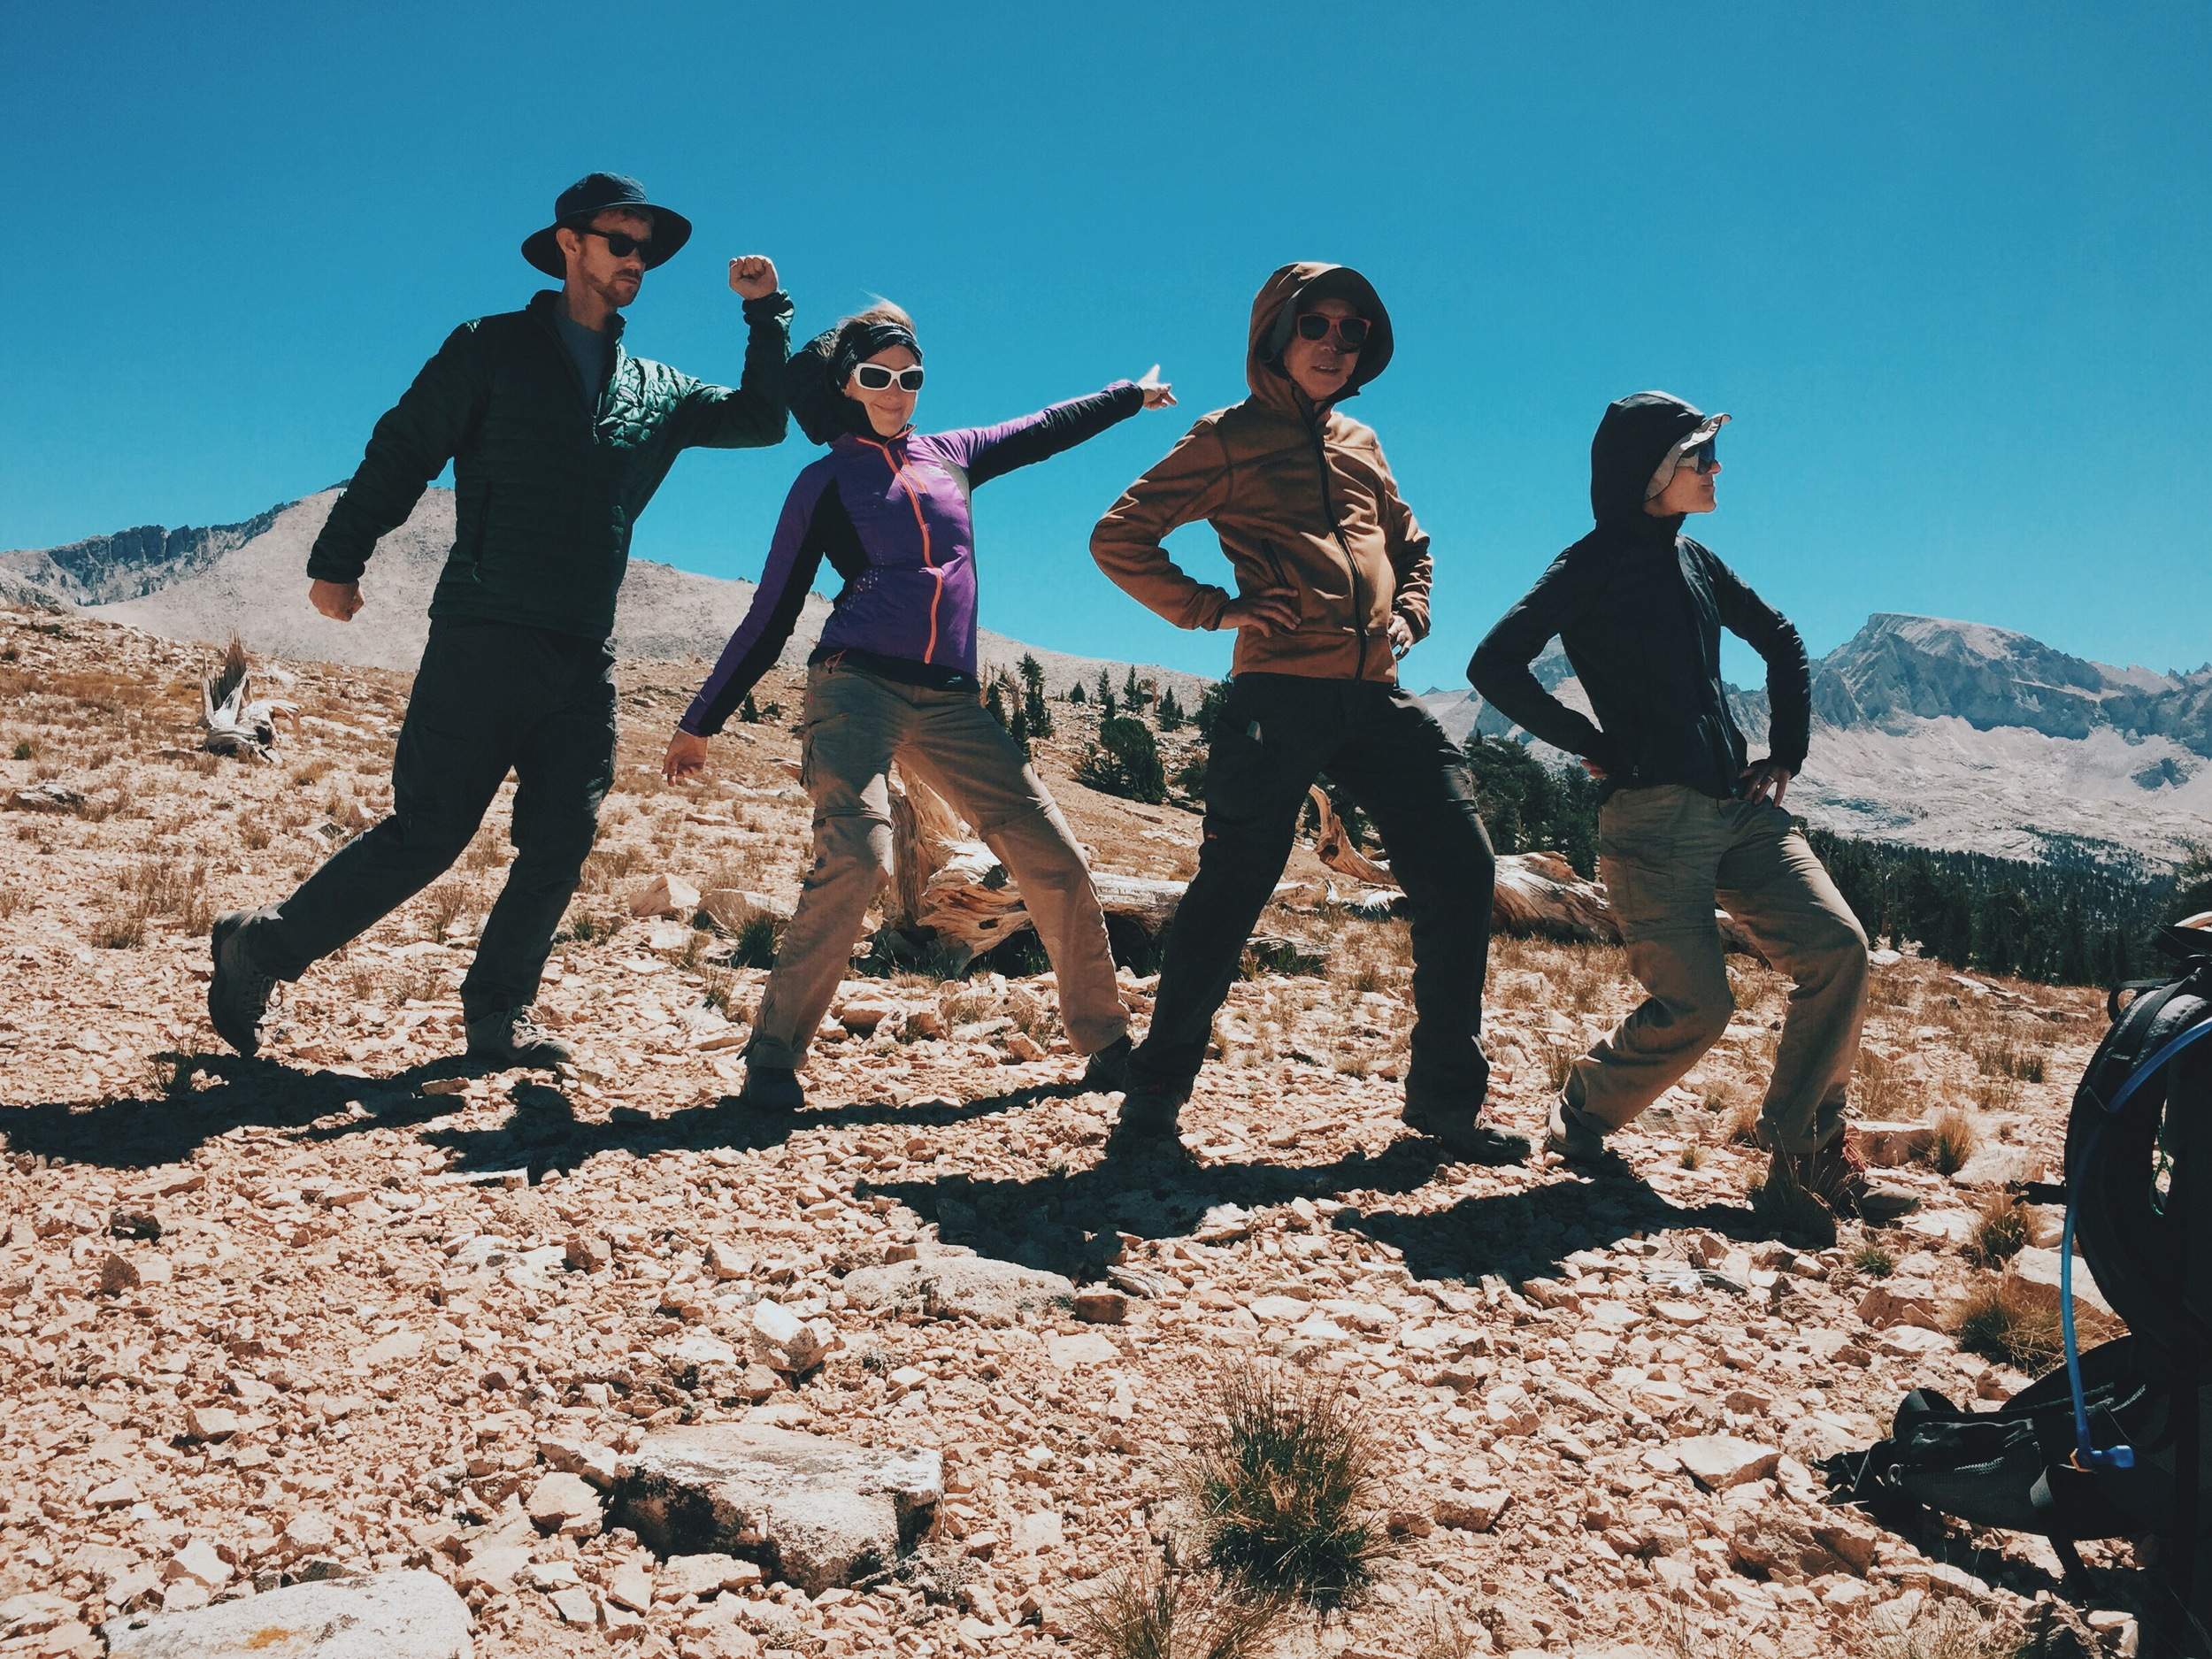 Silliness sets in at Bighorn Plateau.